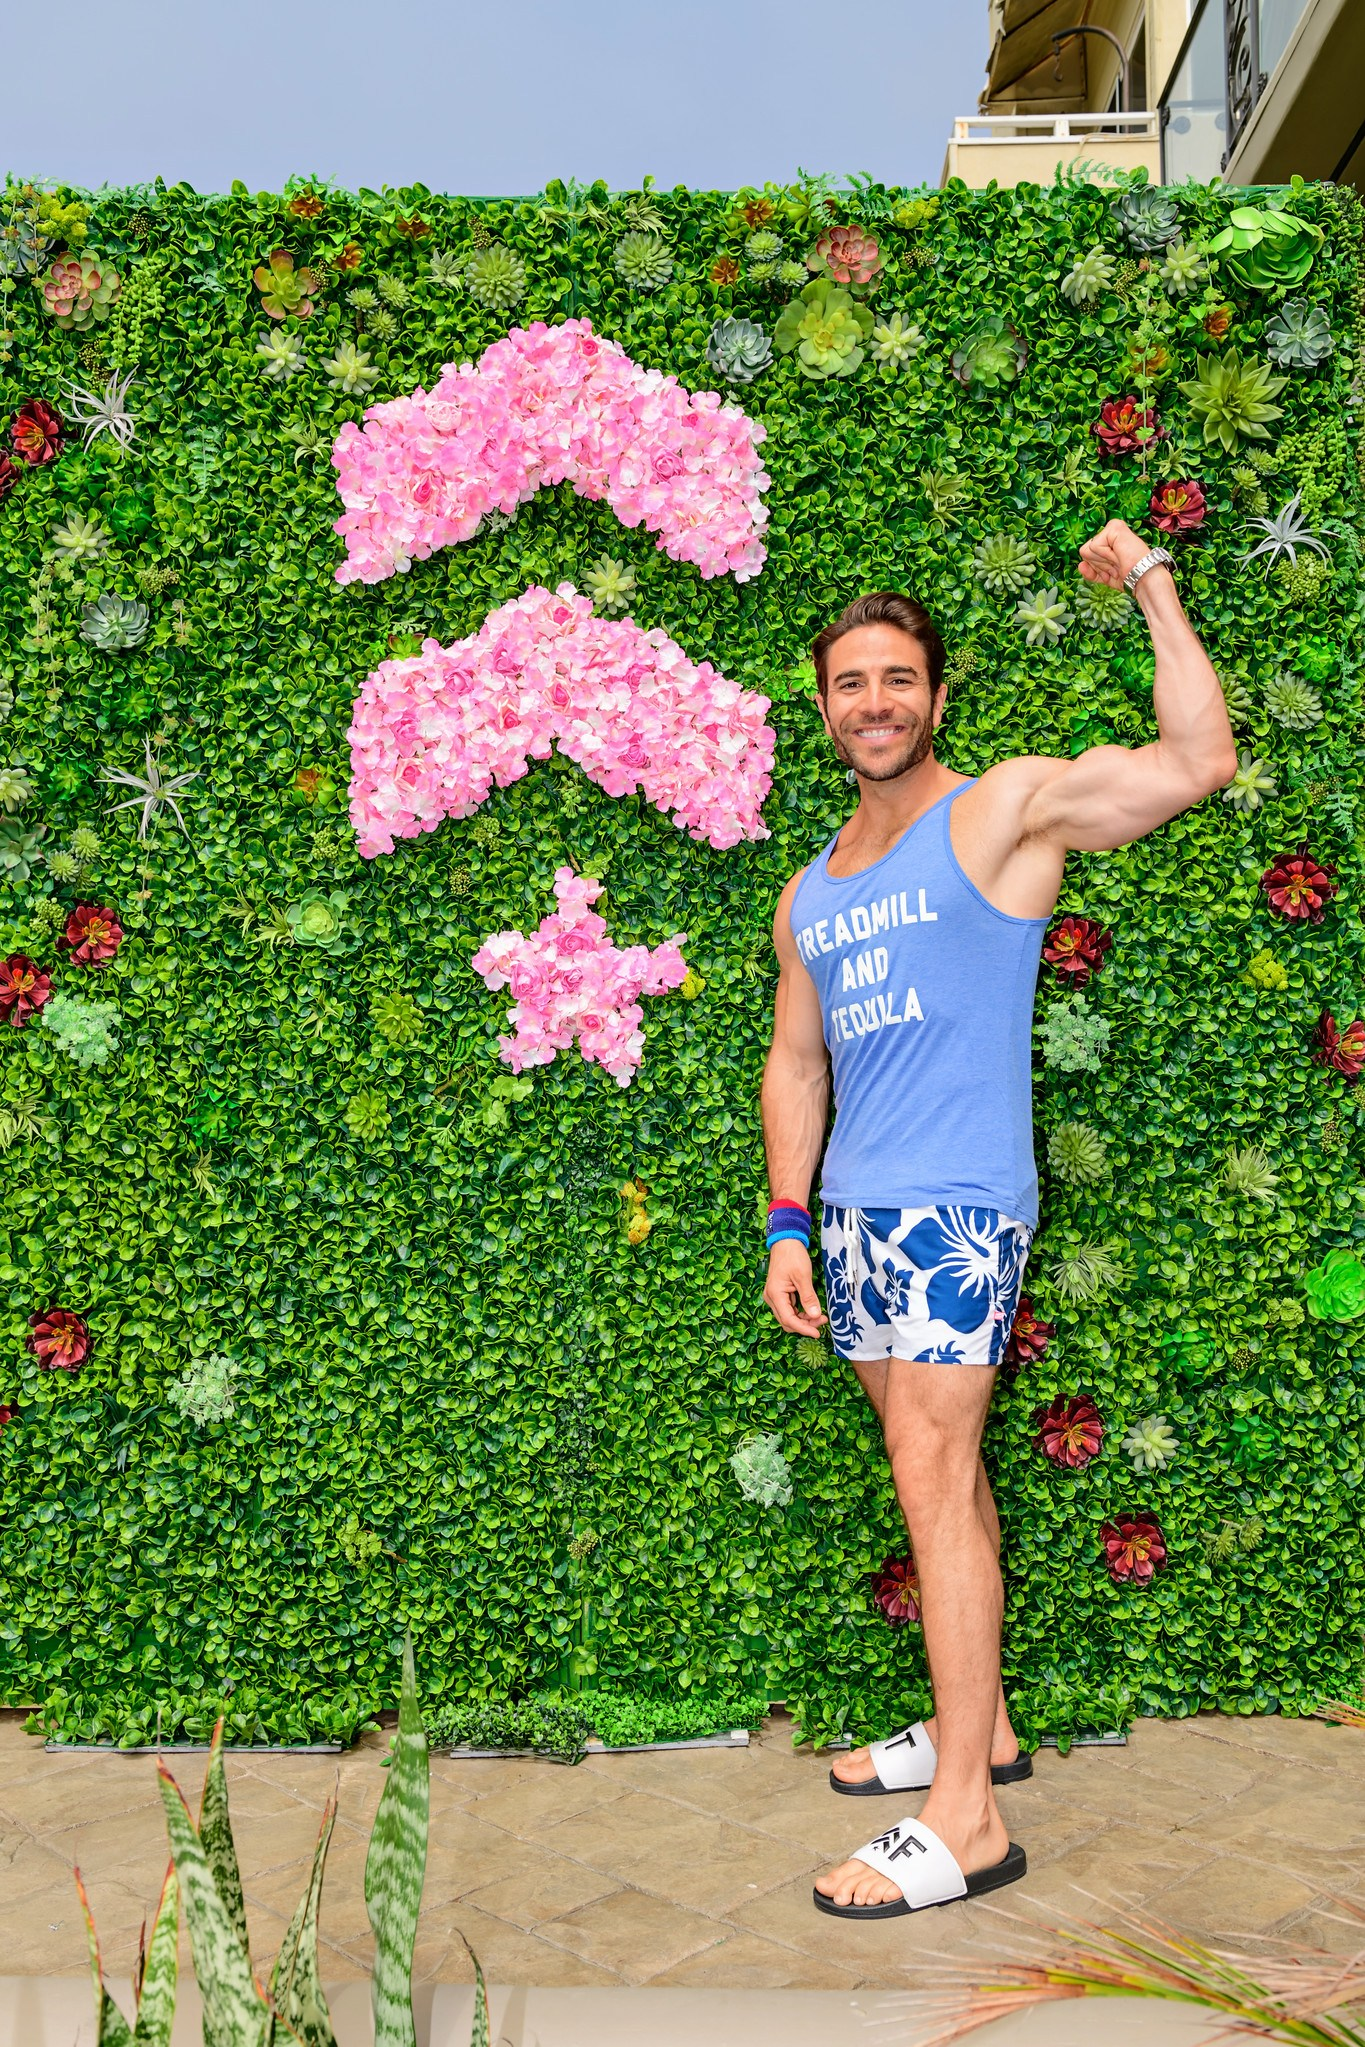 Man in like blue tank top and blue floral shorts flexing in front of pink floral Barry's Bootcamp logo and living wall